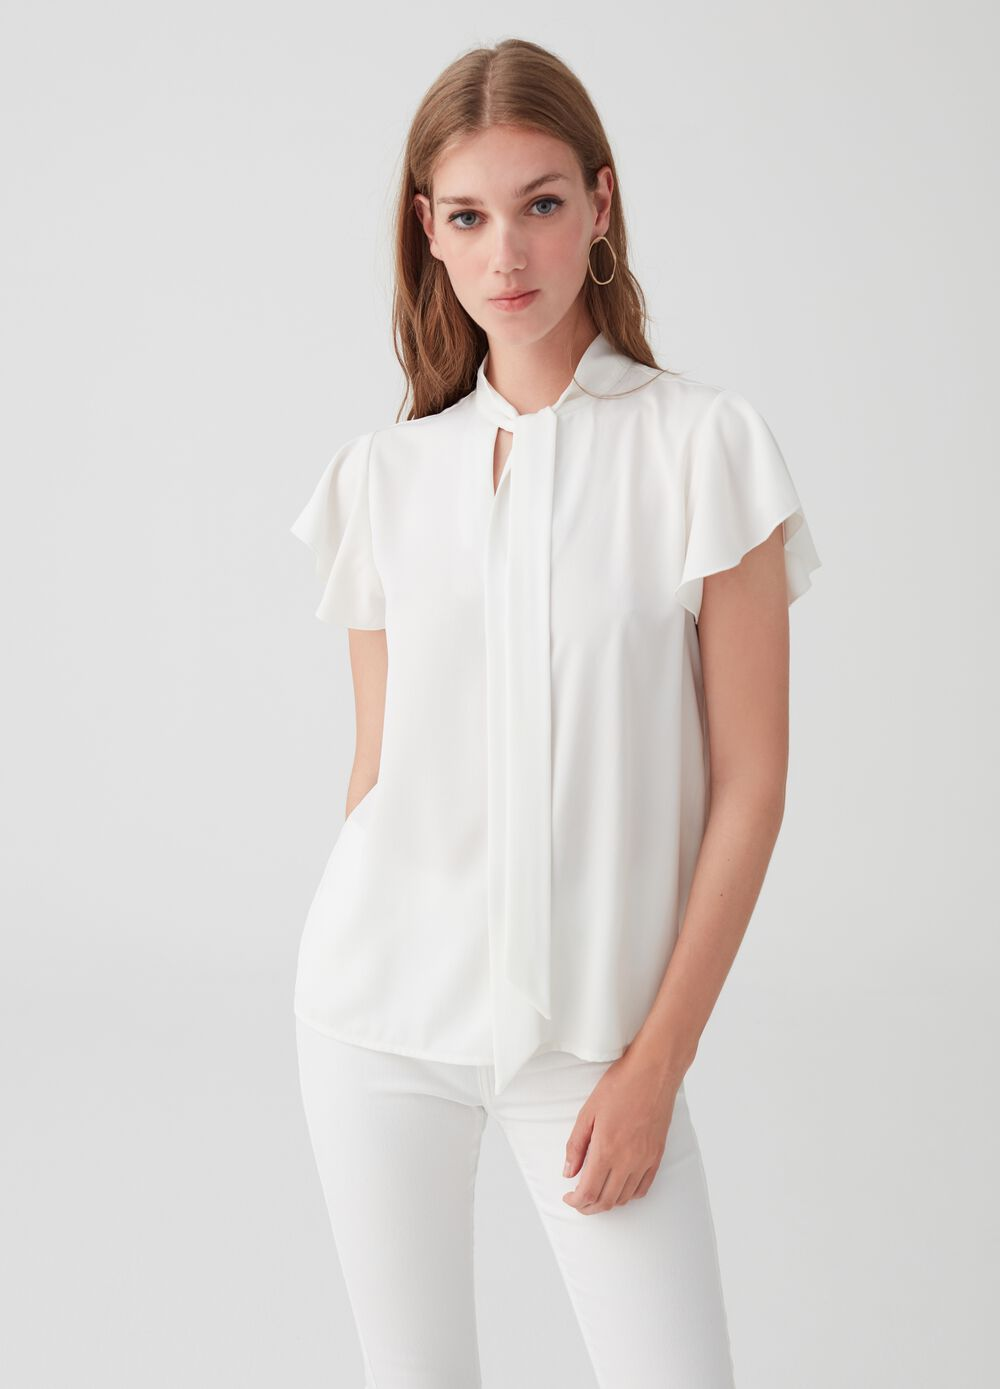 Short-sleeved blouse with ruffles and neckline with bow